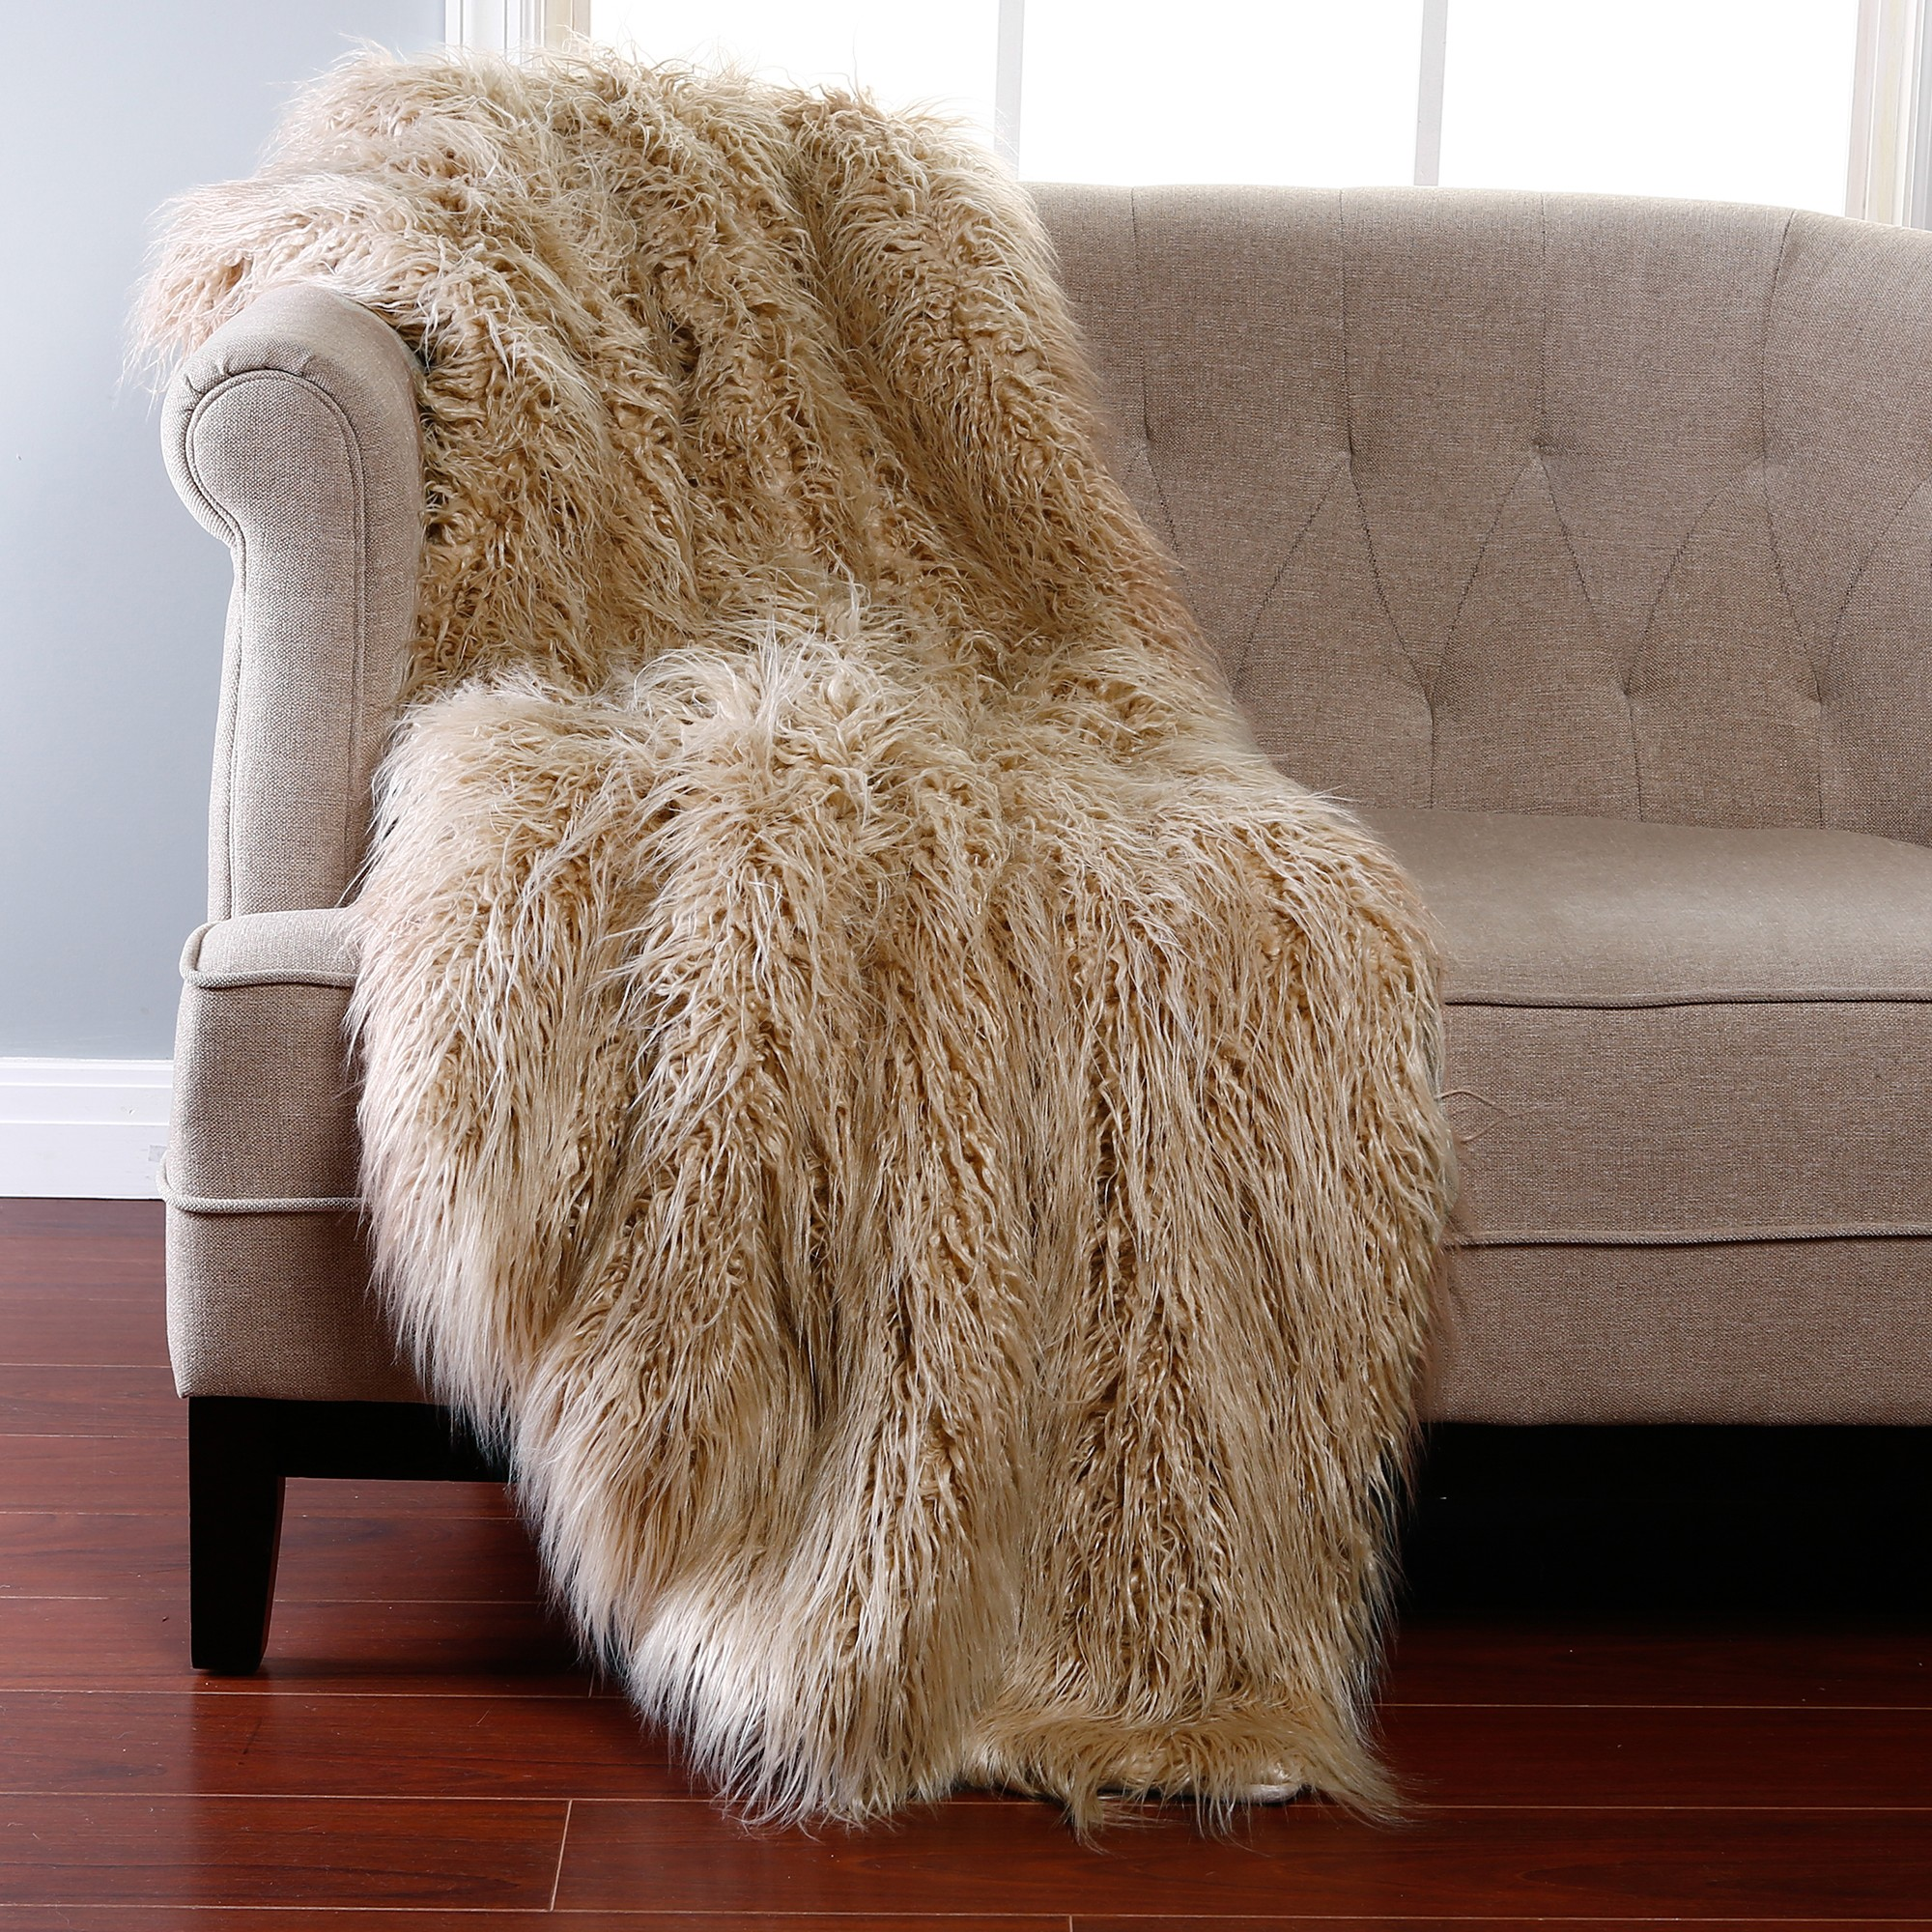 Tonight, wrap up the evening in a real fur blanket or throw. These % authentic prime quality Canadian and American Fur pieces lend an air of unparalleled beauty, providing a mantle of welcoming coziness to your relaxation time. Our blankets and throws are expertly hand crafted by /5(90).